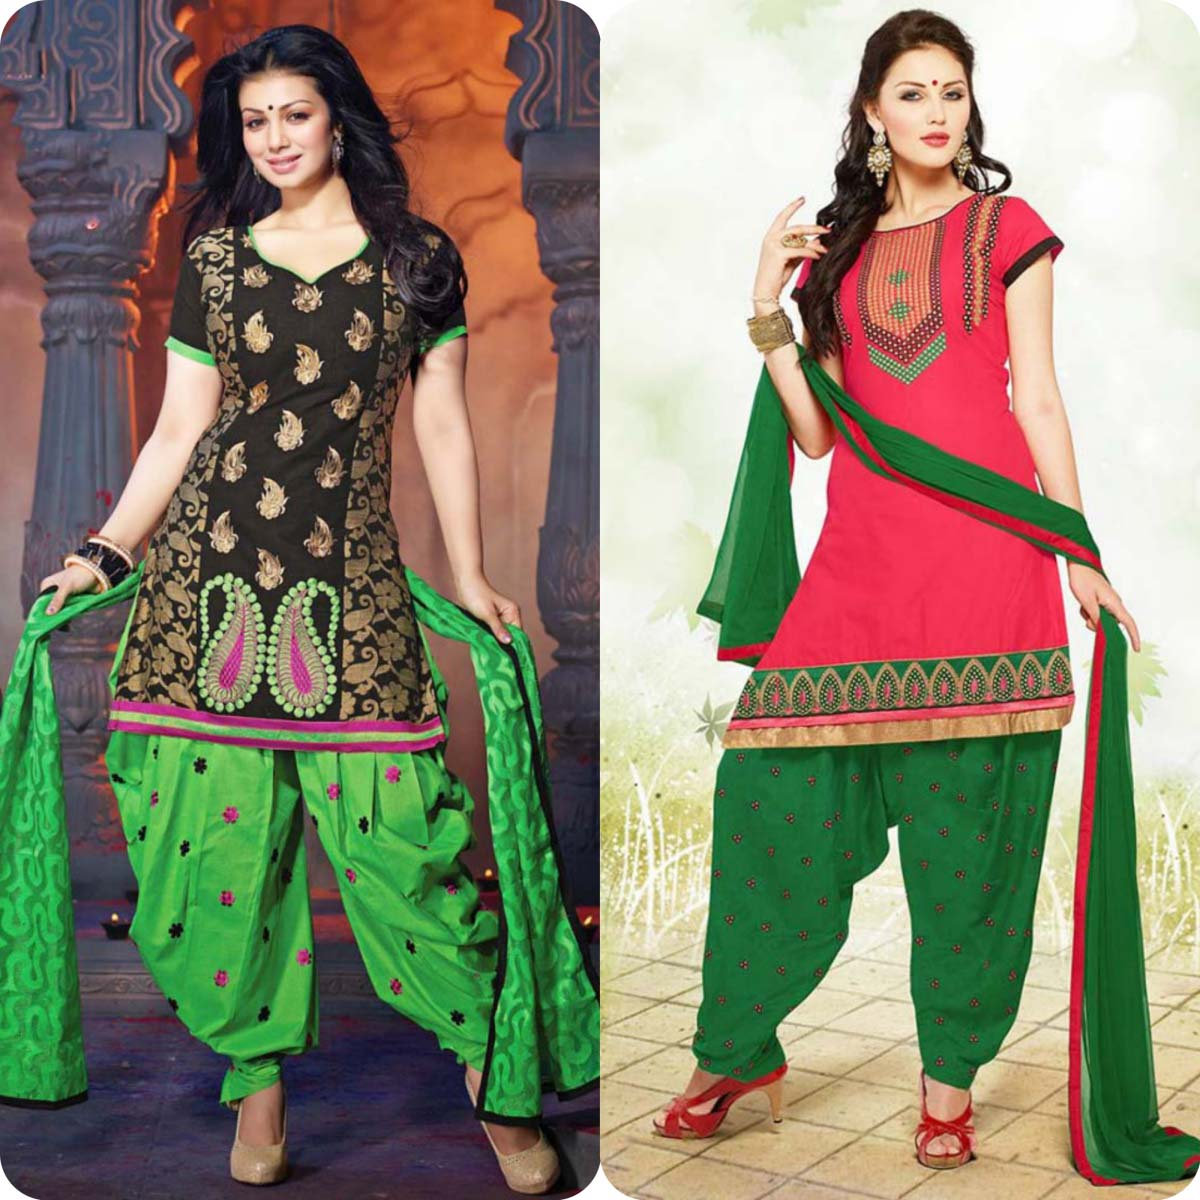 Latest Pakistani and Indian Patiala Shalwar Kameez Suits Designs (11)